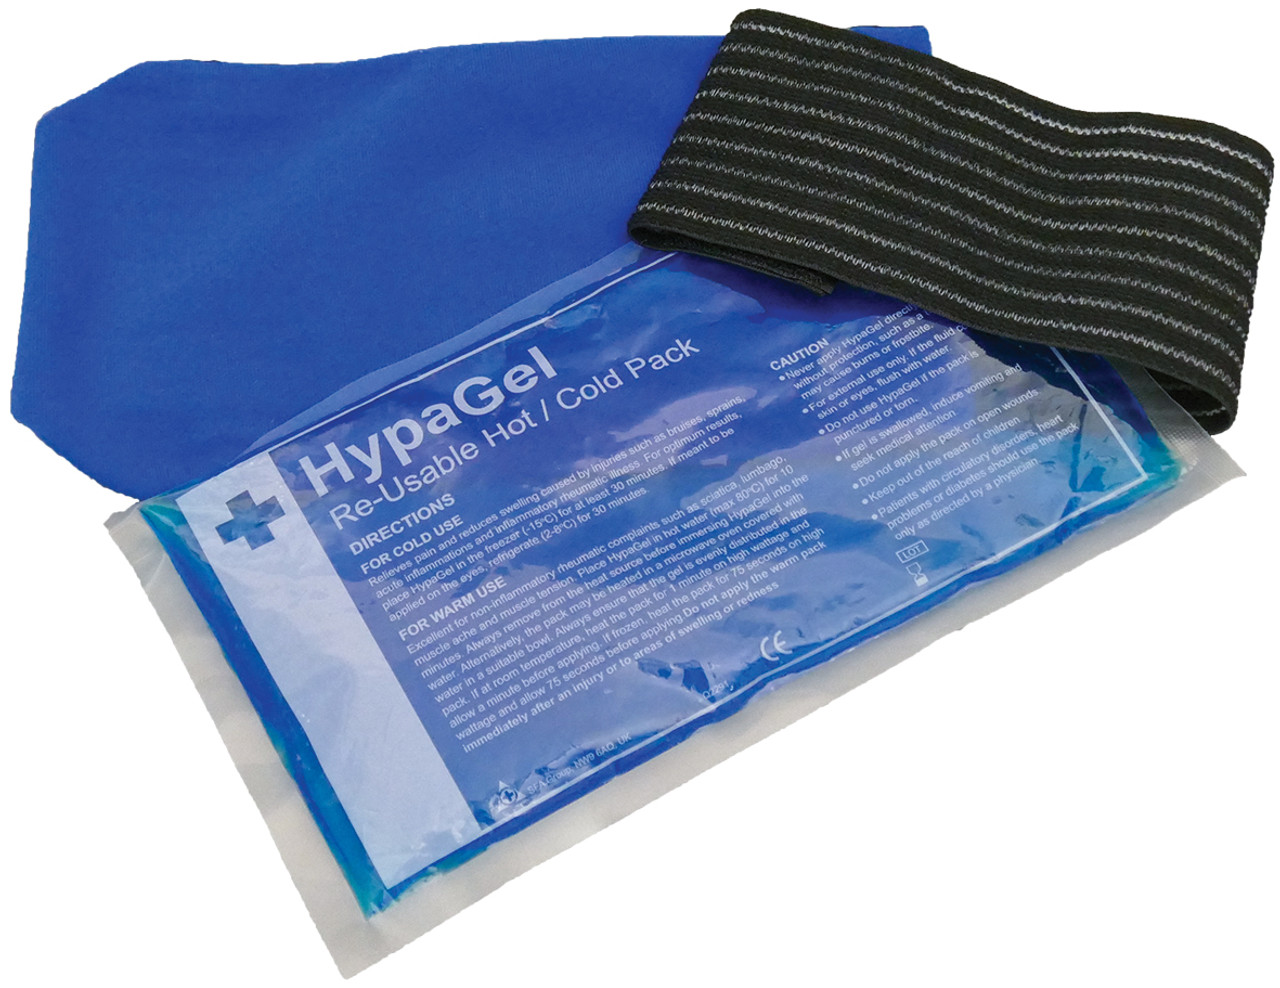 Hot//Cold Gel Pack With Elasticated Wrap reusable